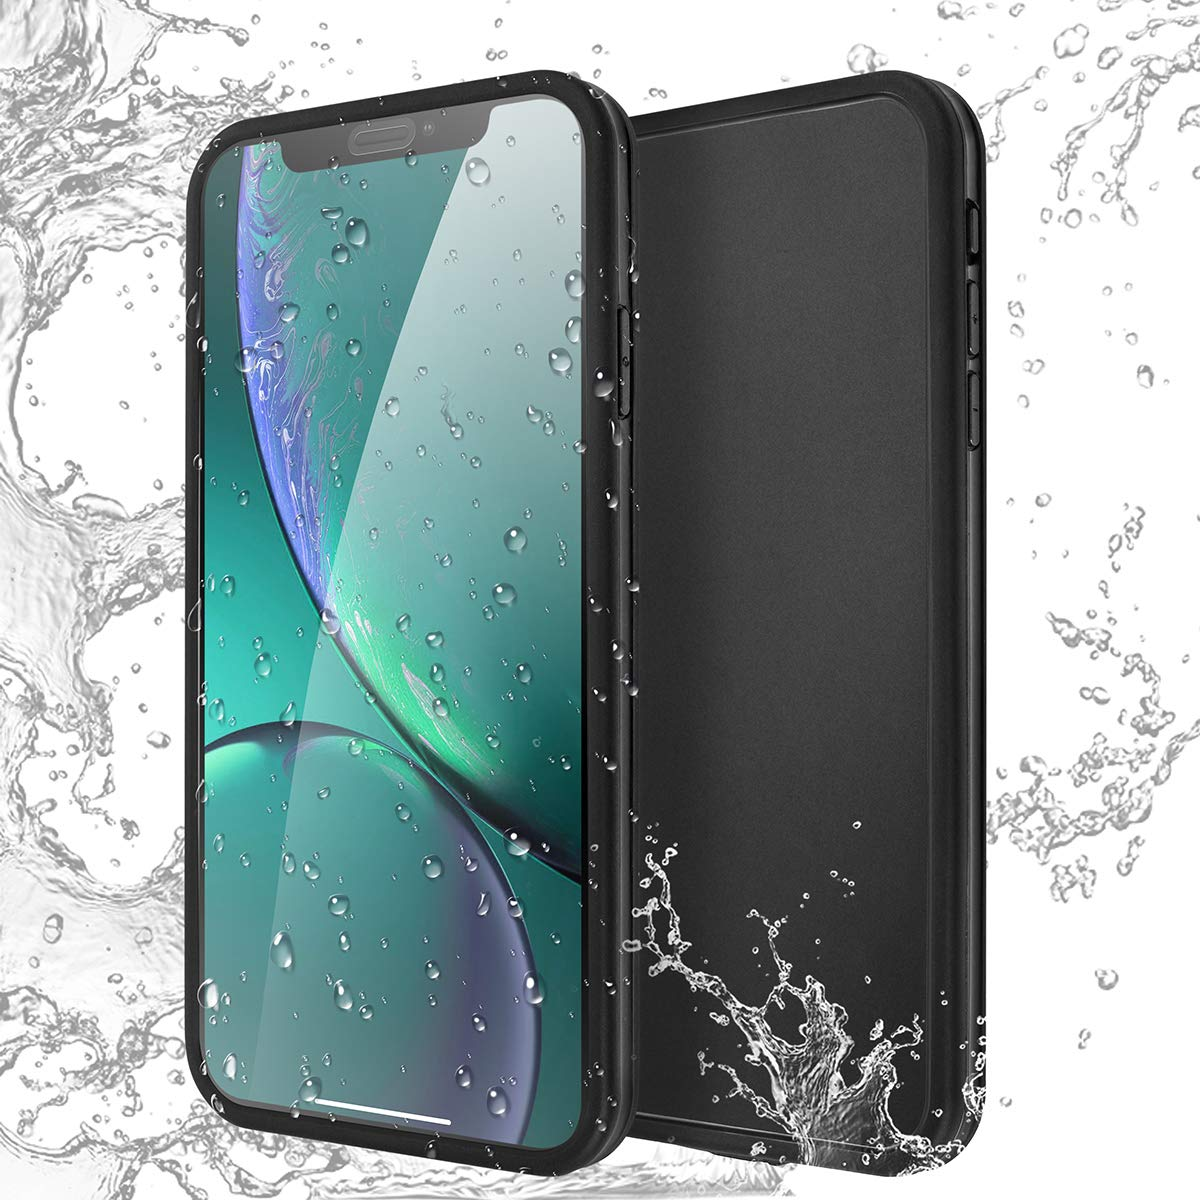 big sale 4f0cf 5ba3d iPhone Xs Max Waterproof Case, AICase IPX-6 Water Resistant [360 All Round  Protective] Ultra Slim Thin Light Shock/Dust/Snow Proof with Built-in ...